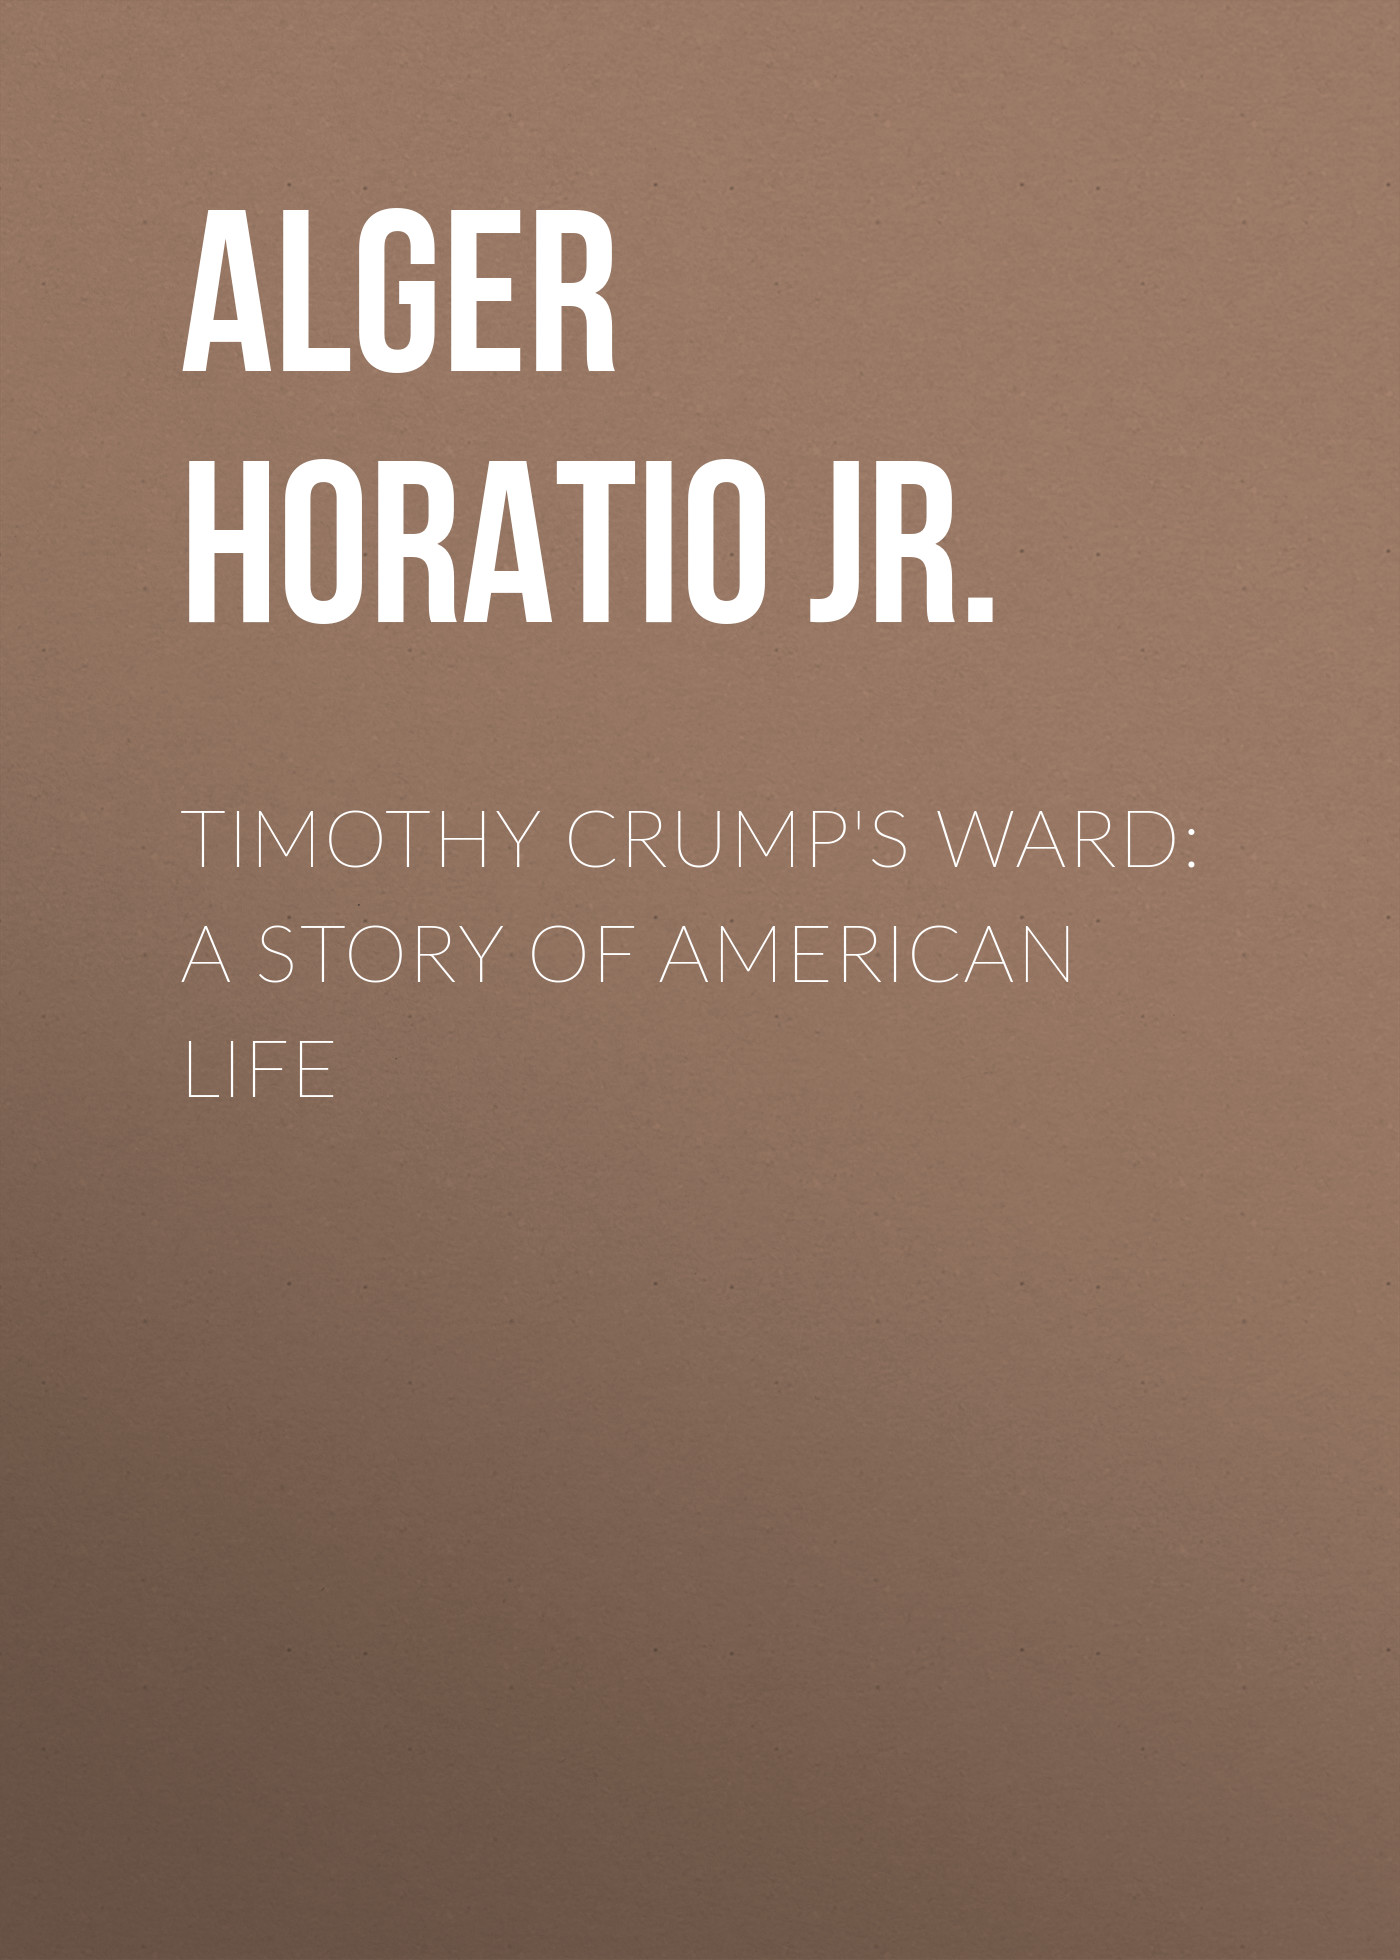 Alger Horatio Jr. Timothy Crump's Ward: A Story of American Life